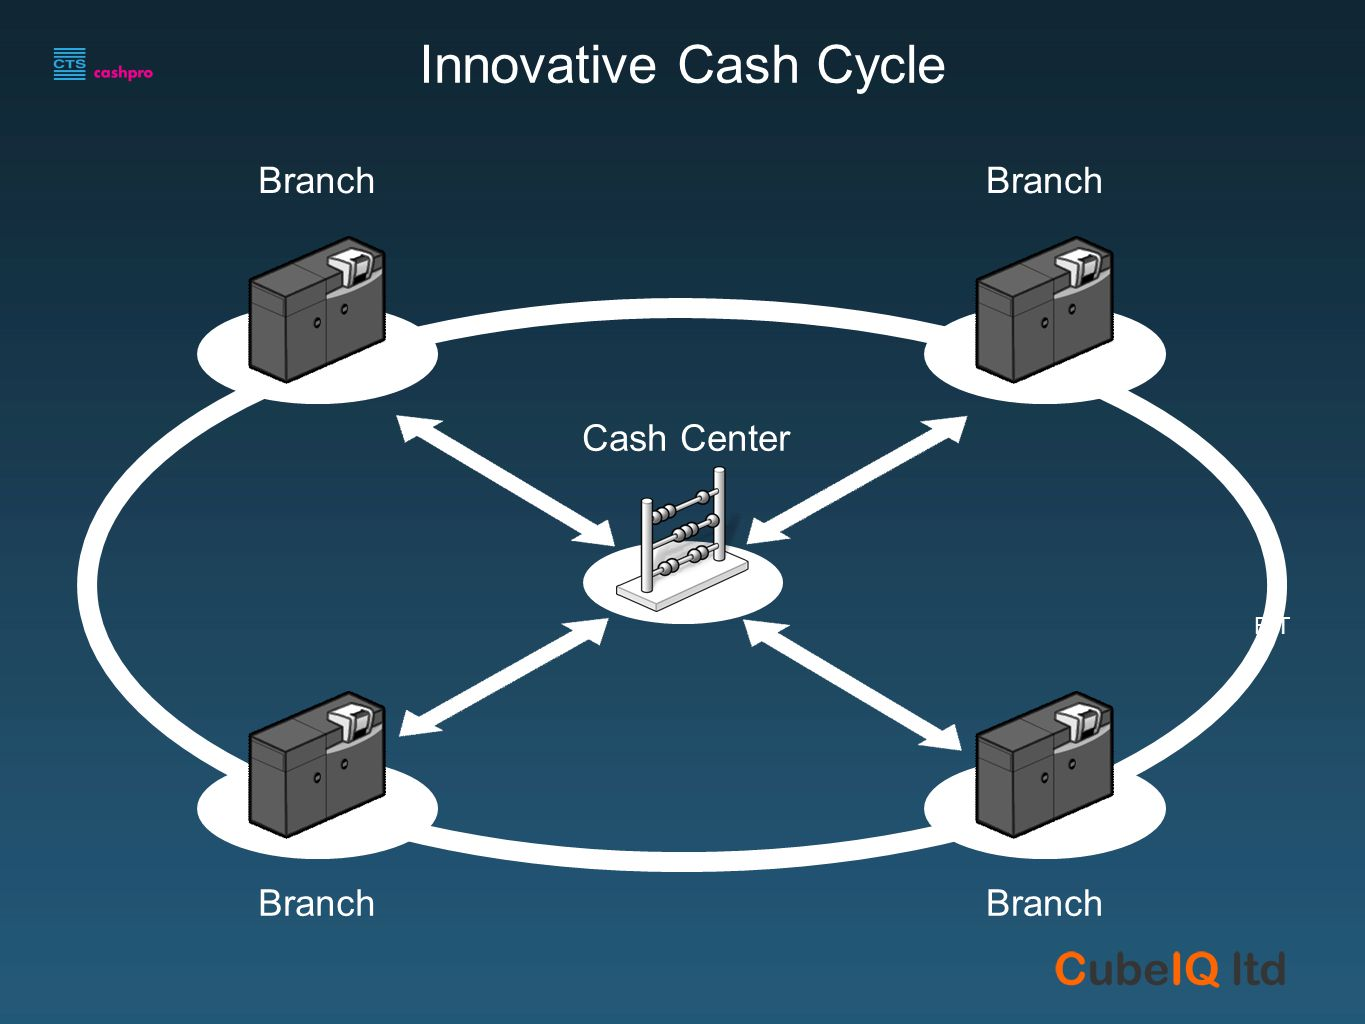 Branch FIT UNFIT Cash Center Innovative Cash Cycle